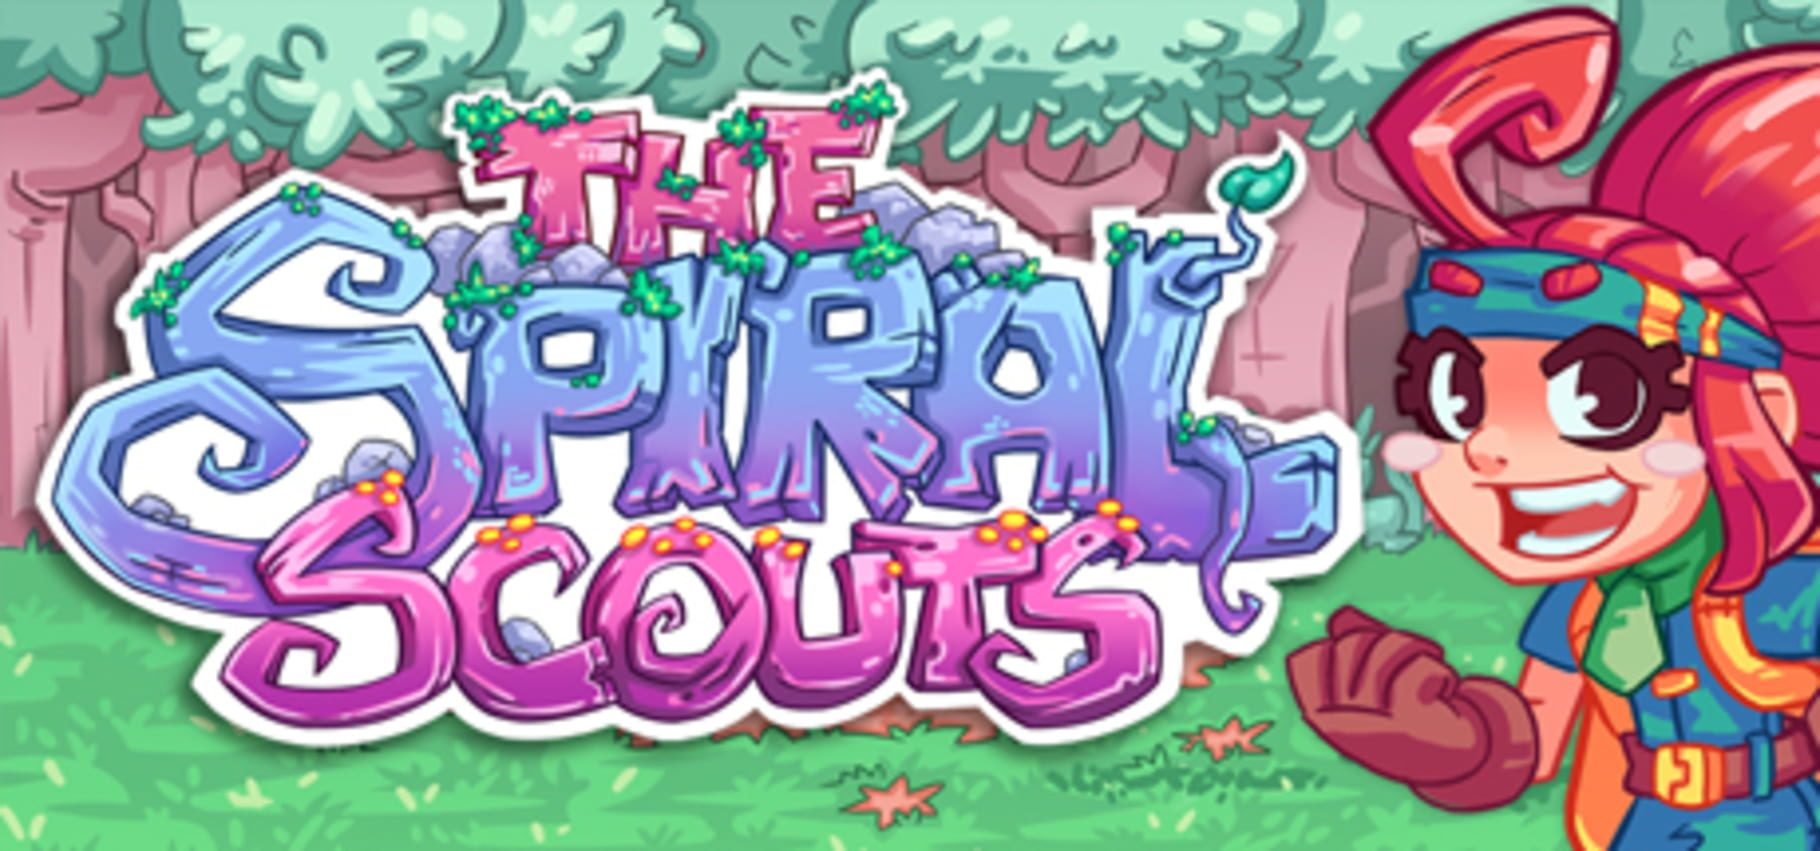 buy The Spiral Scouts cd key for all platform